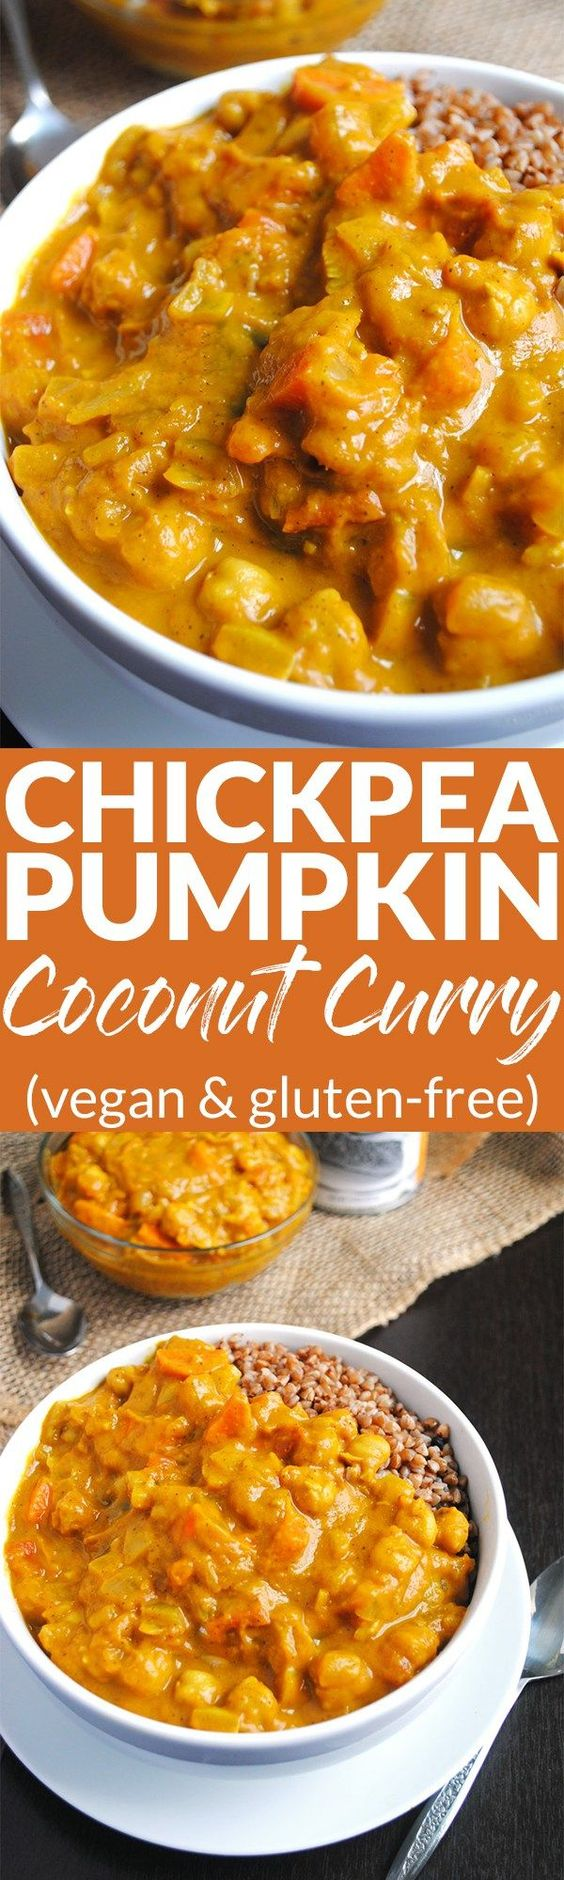 This easy Chickpea Pumpkin Coconut Curry is a delicious Vegan Chickpea Pumpkin Coconut Curry